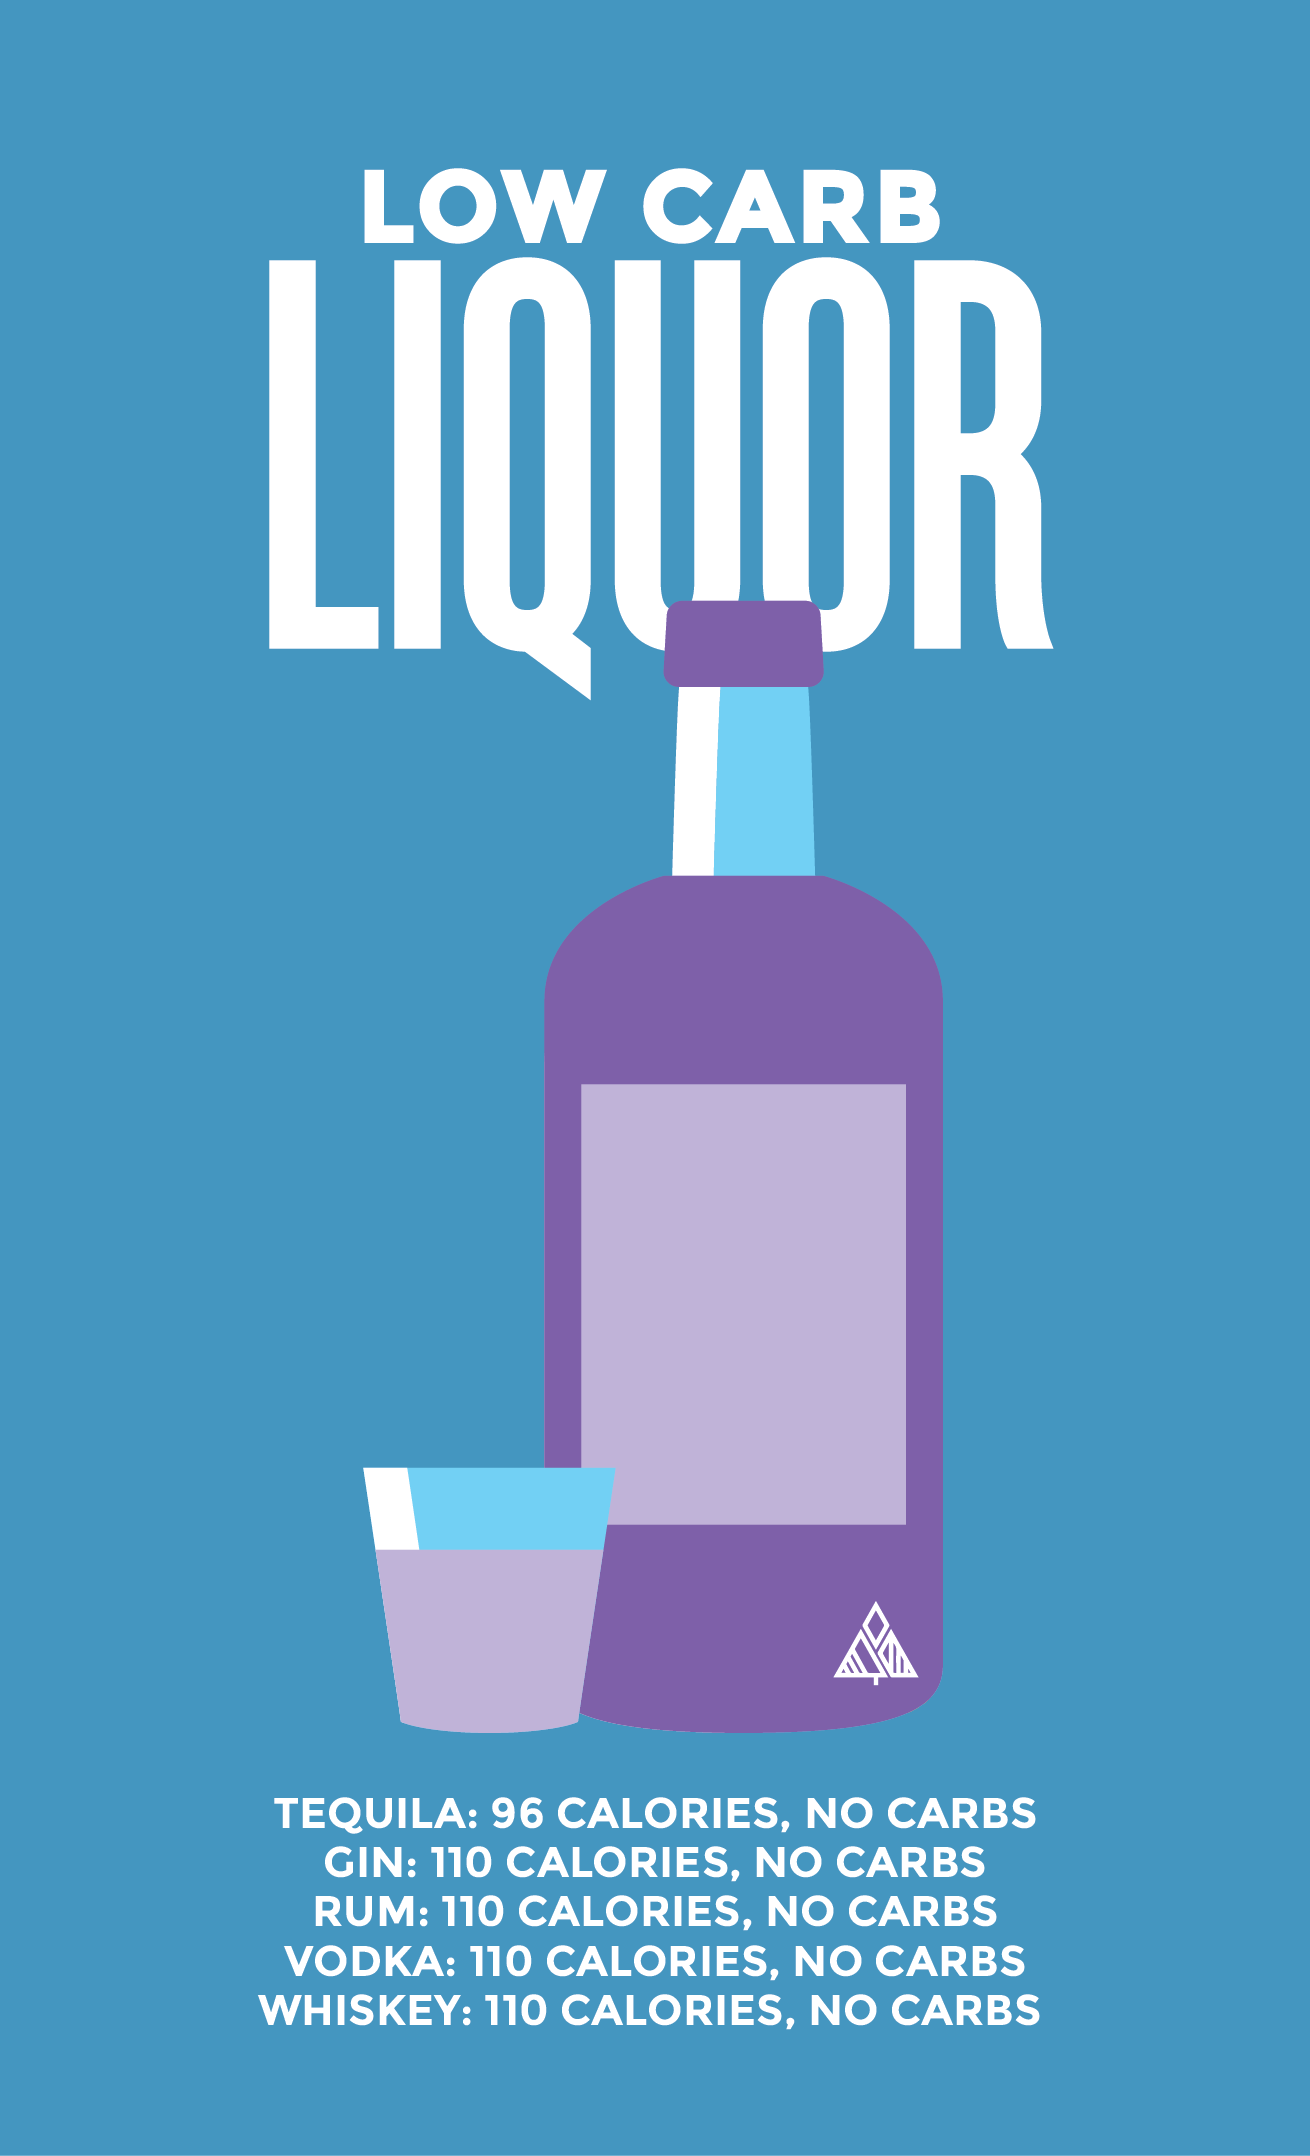 a list of low carb liquors with the calorie and carb count